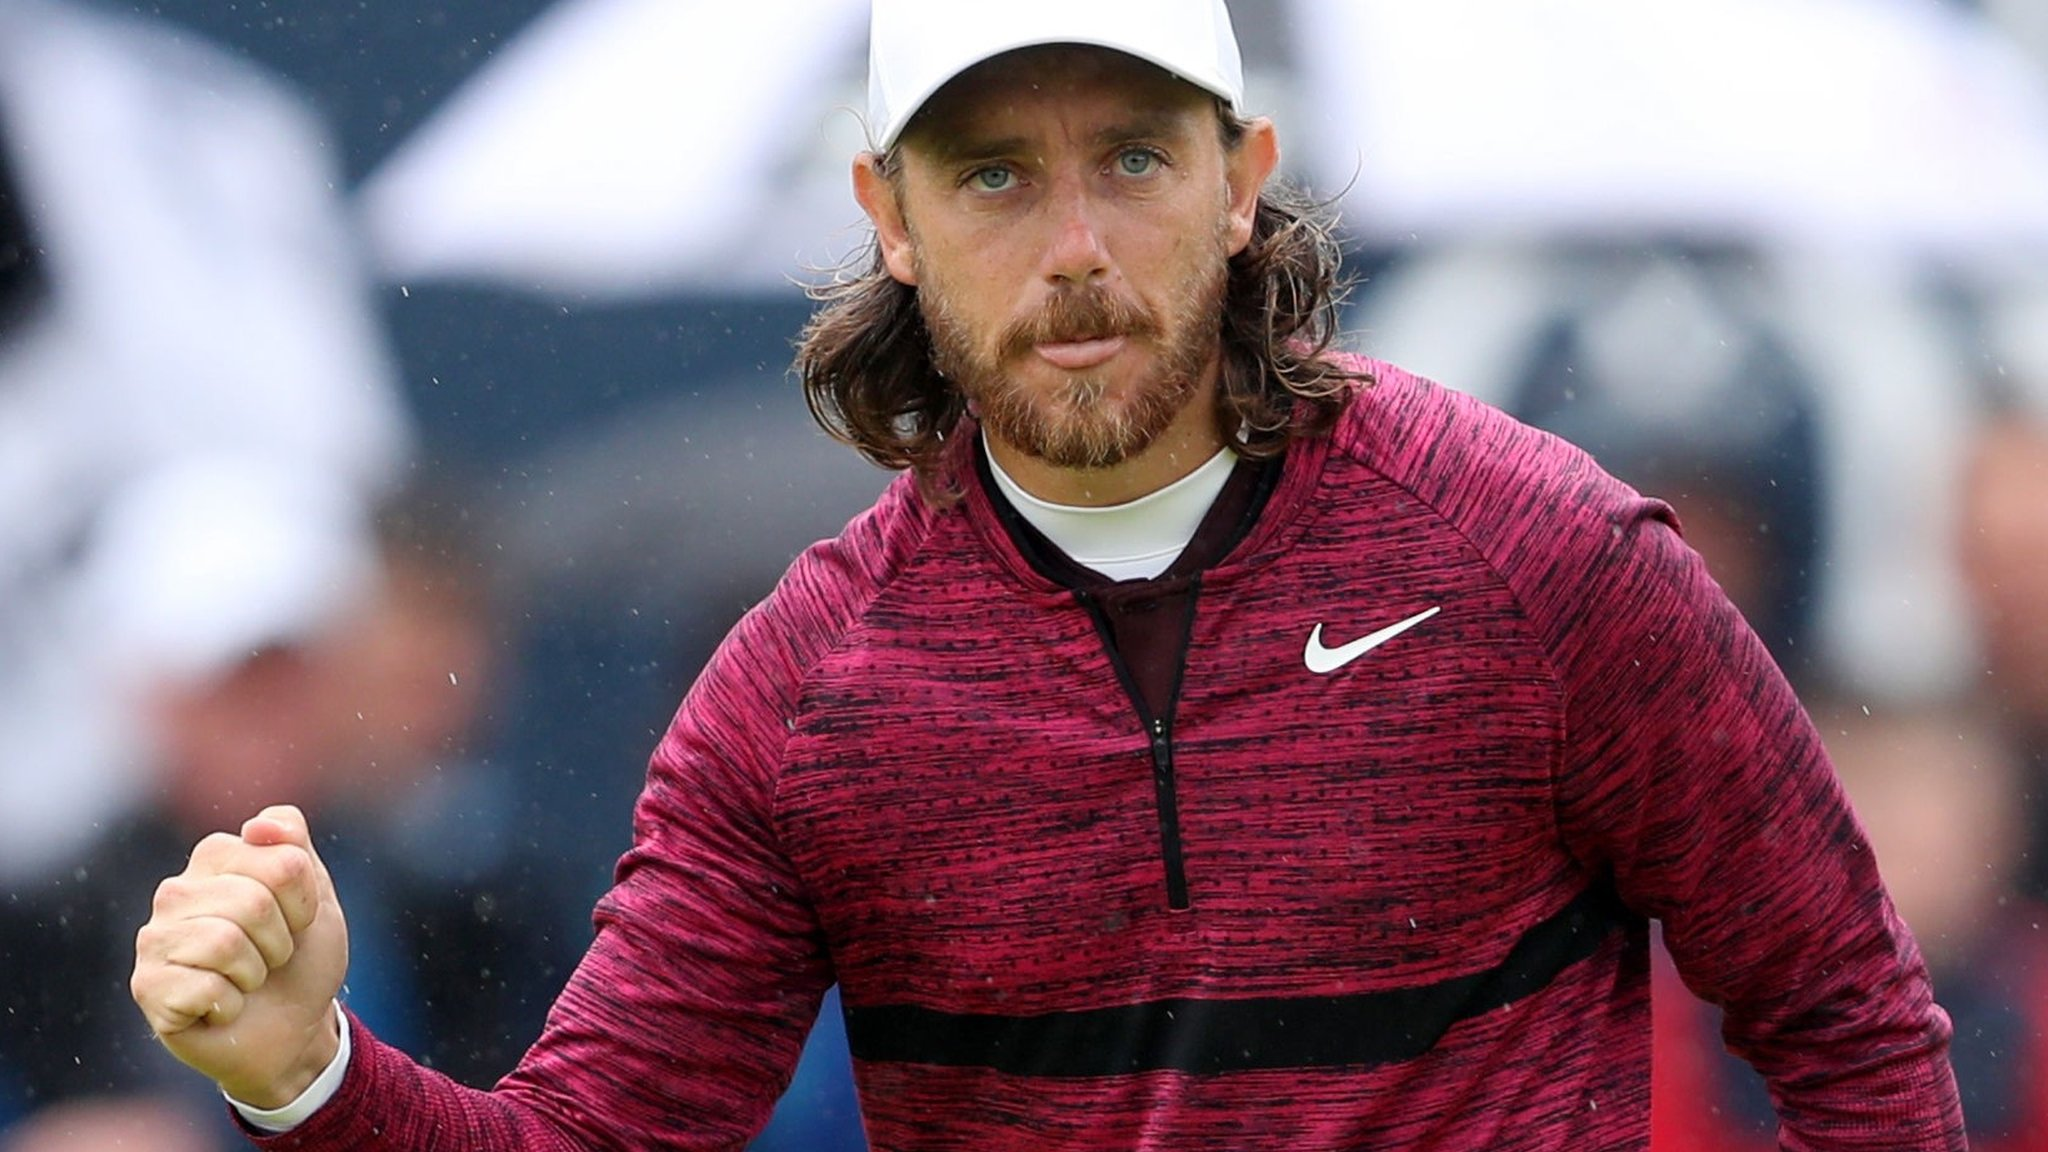 The Open 2018: Tommy Fleetwood eyes 'special' win at Carnoustie